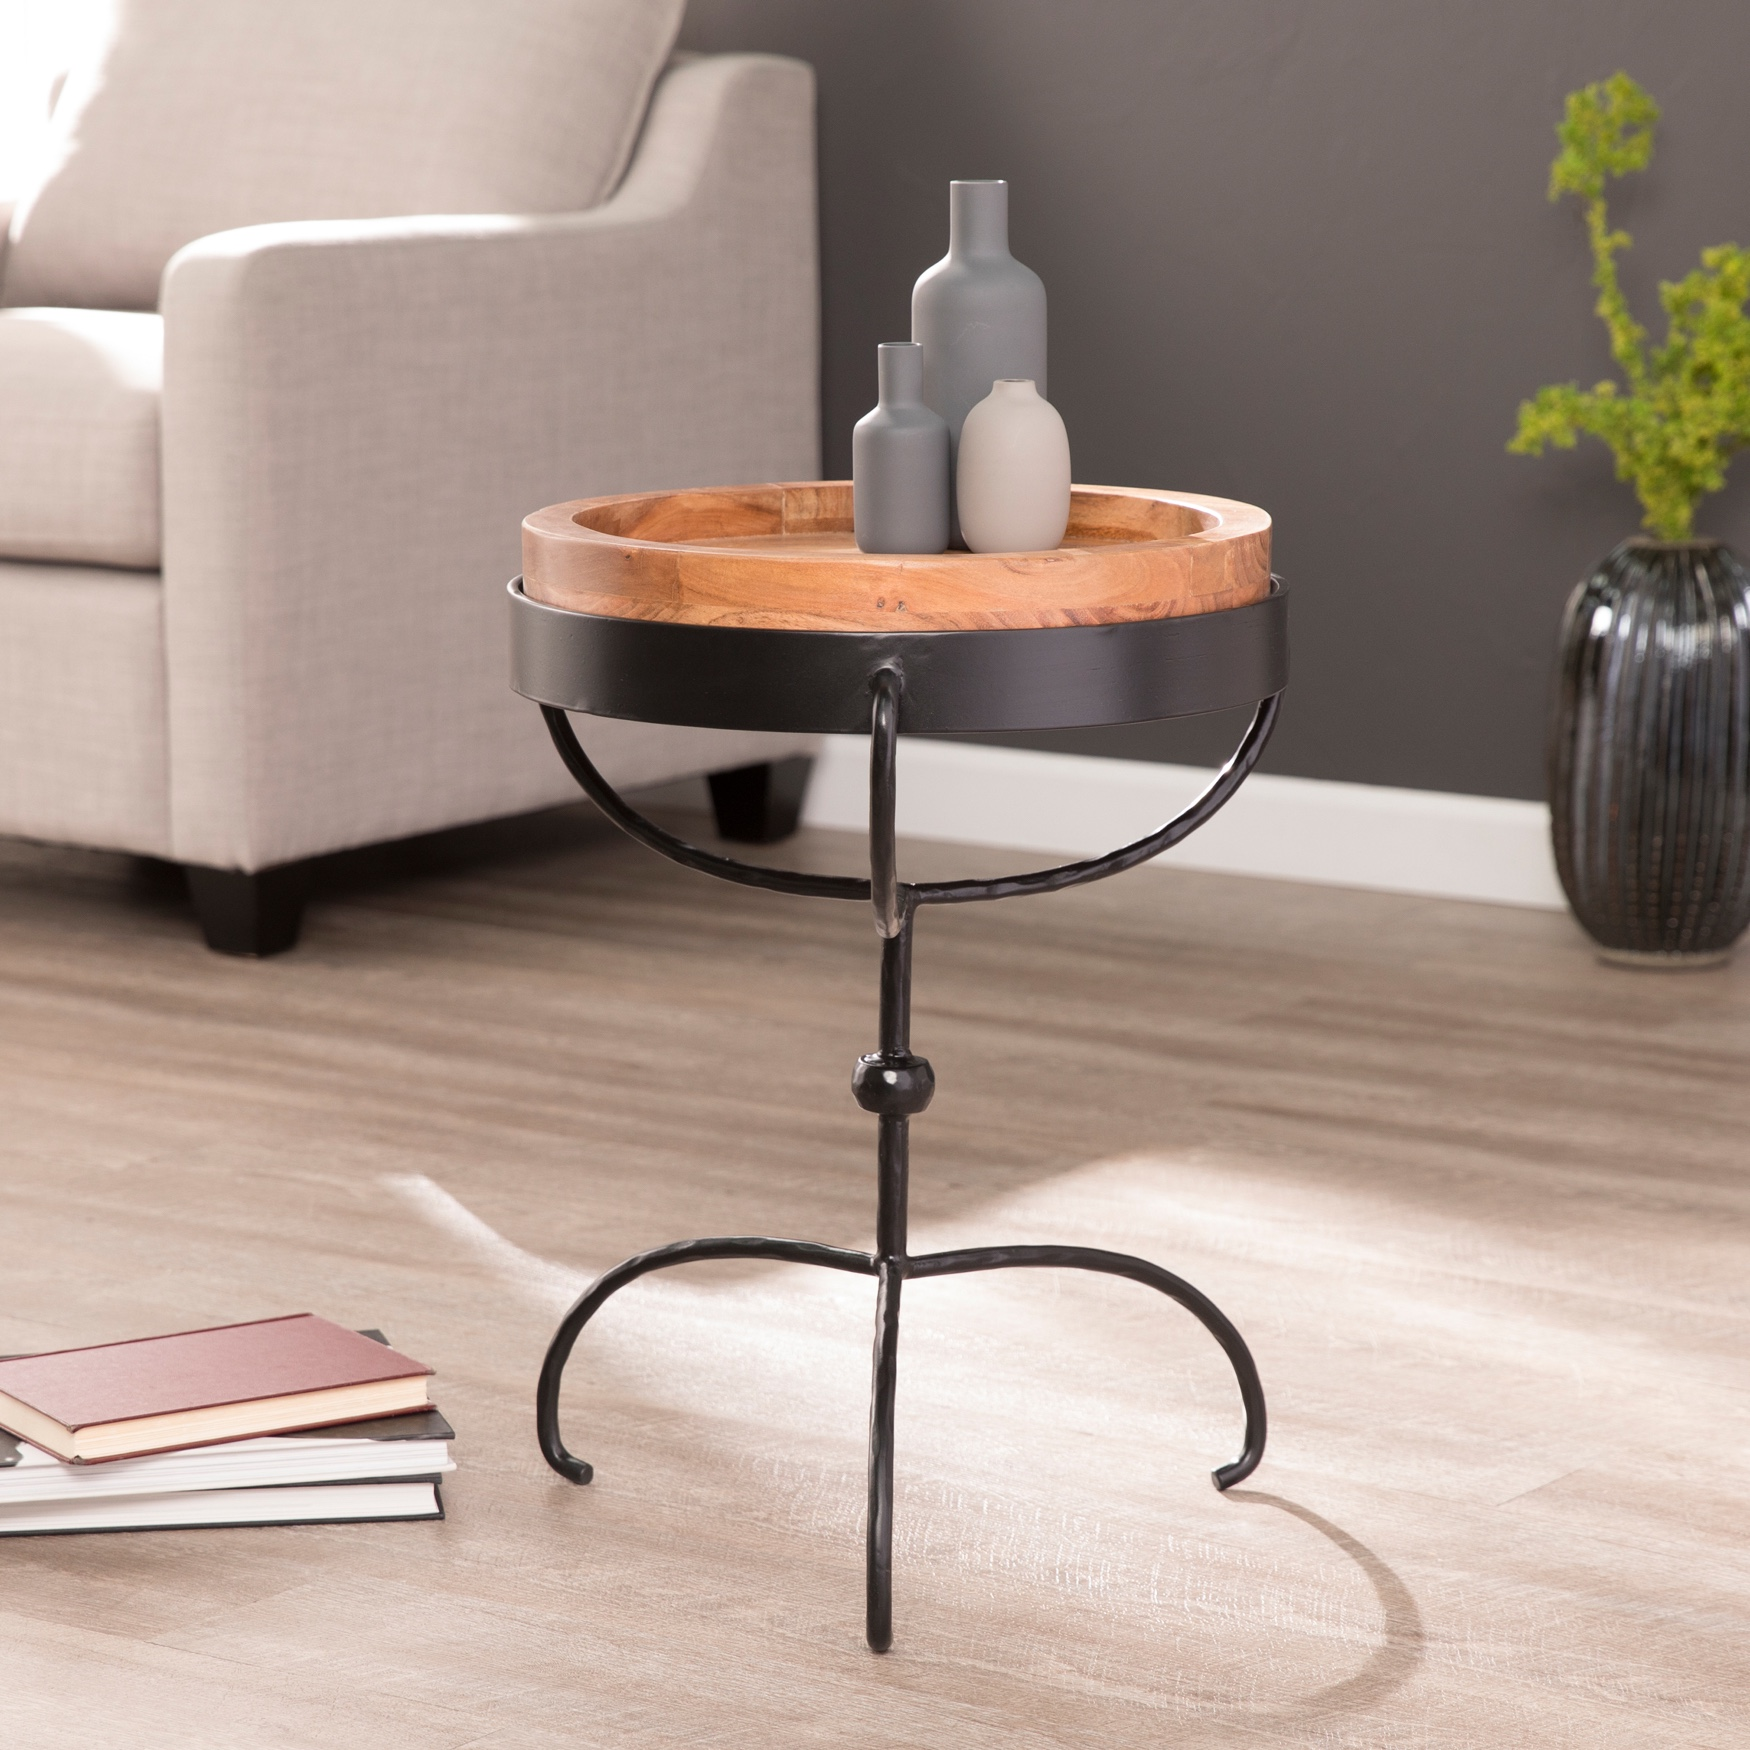 Chadra Round Accent Table with Serving Tray, BLACK